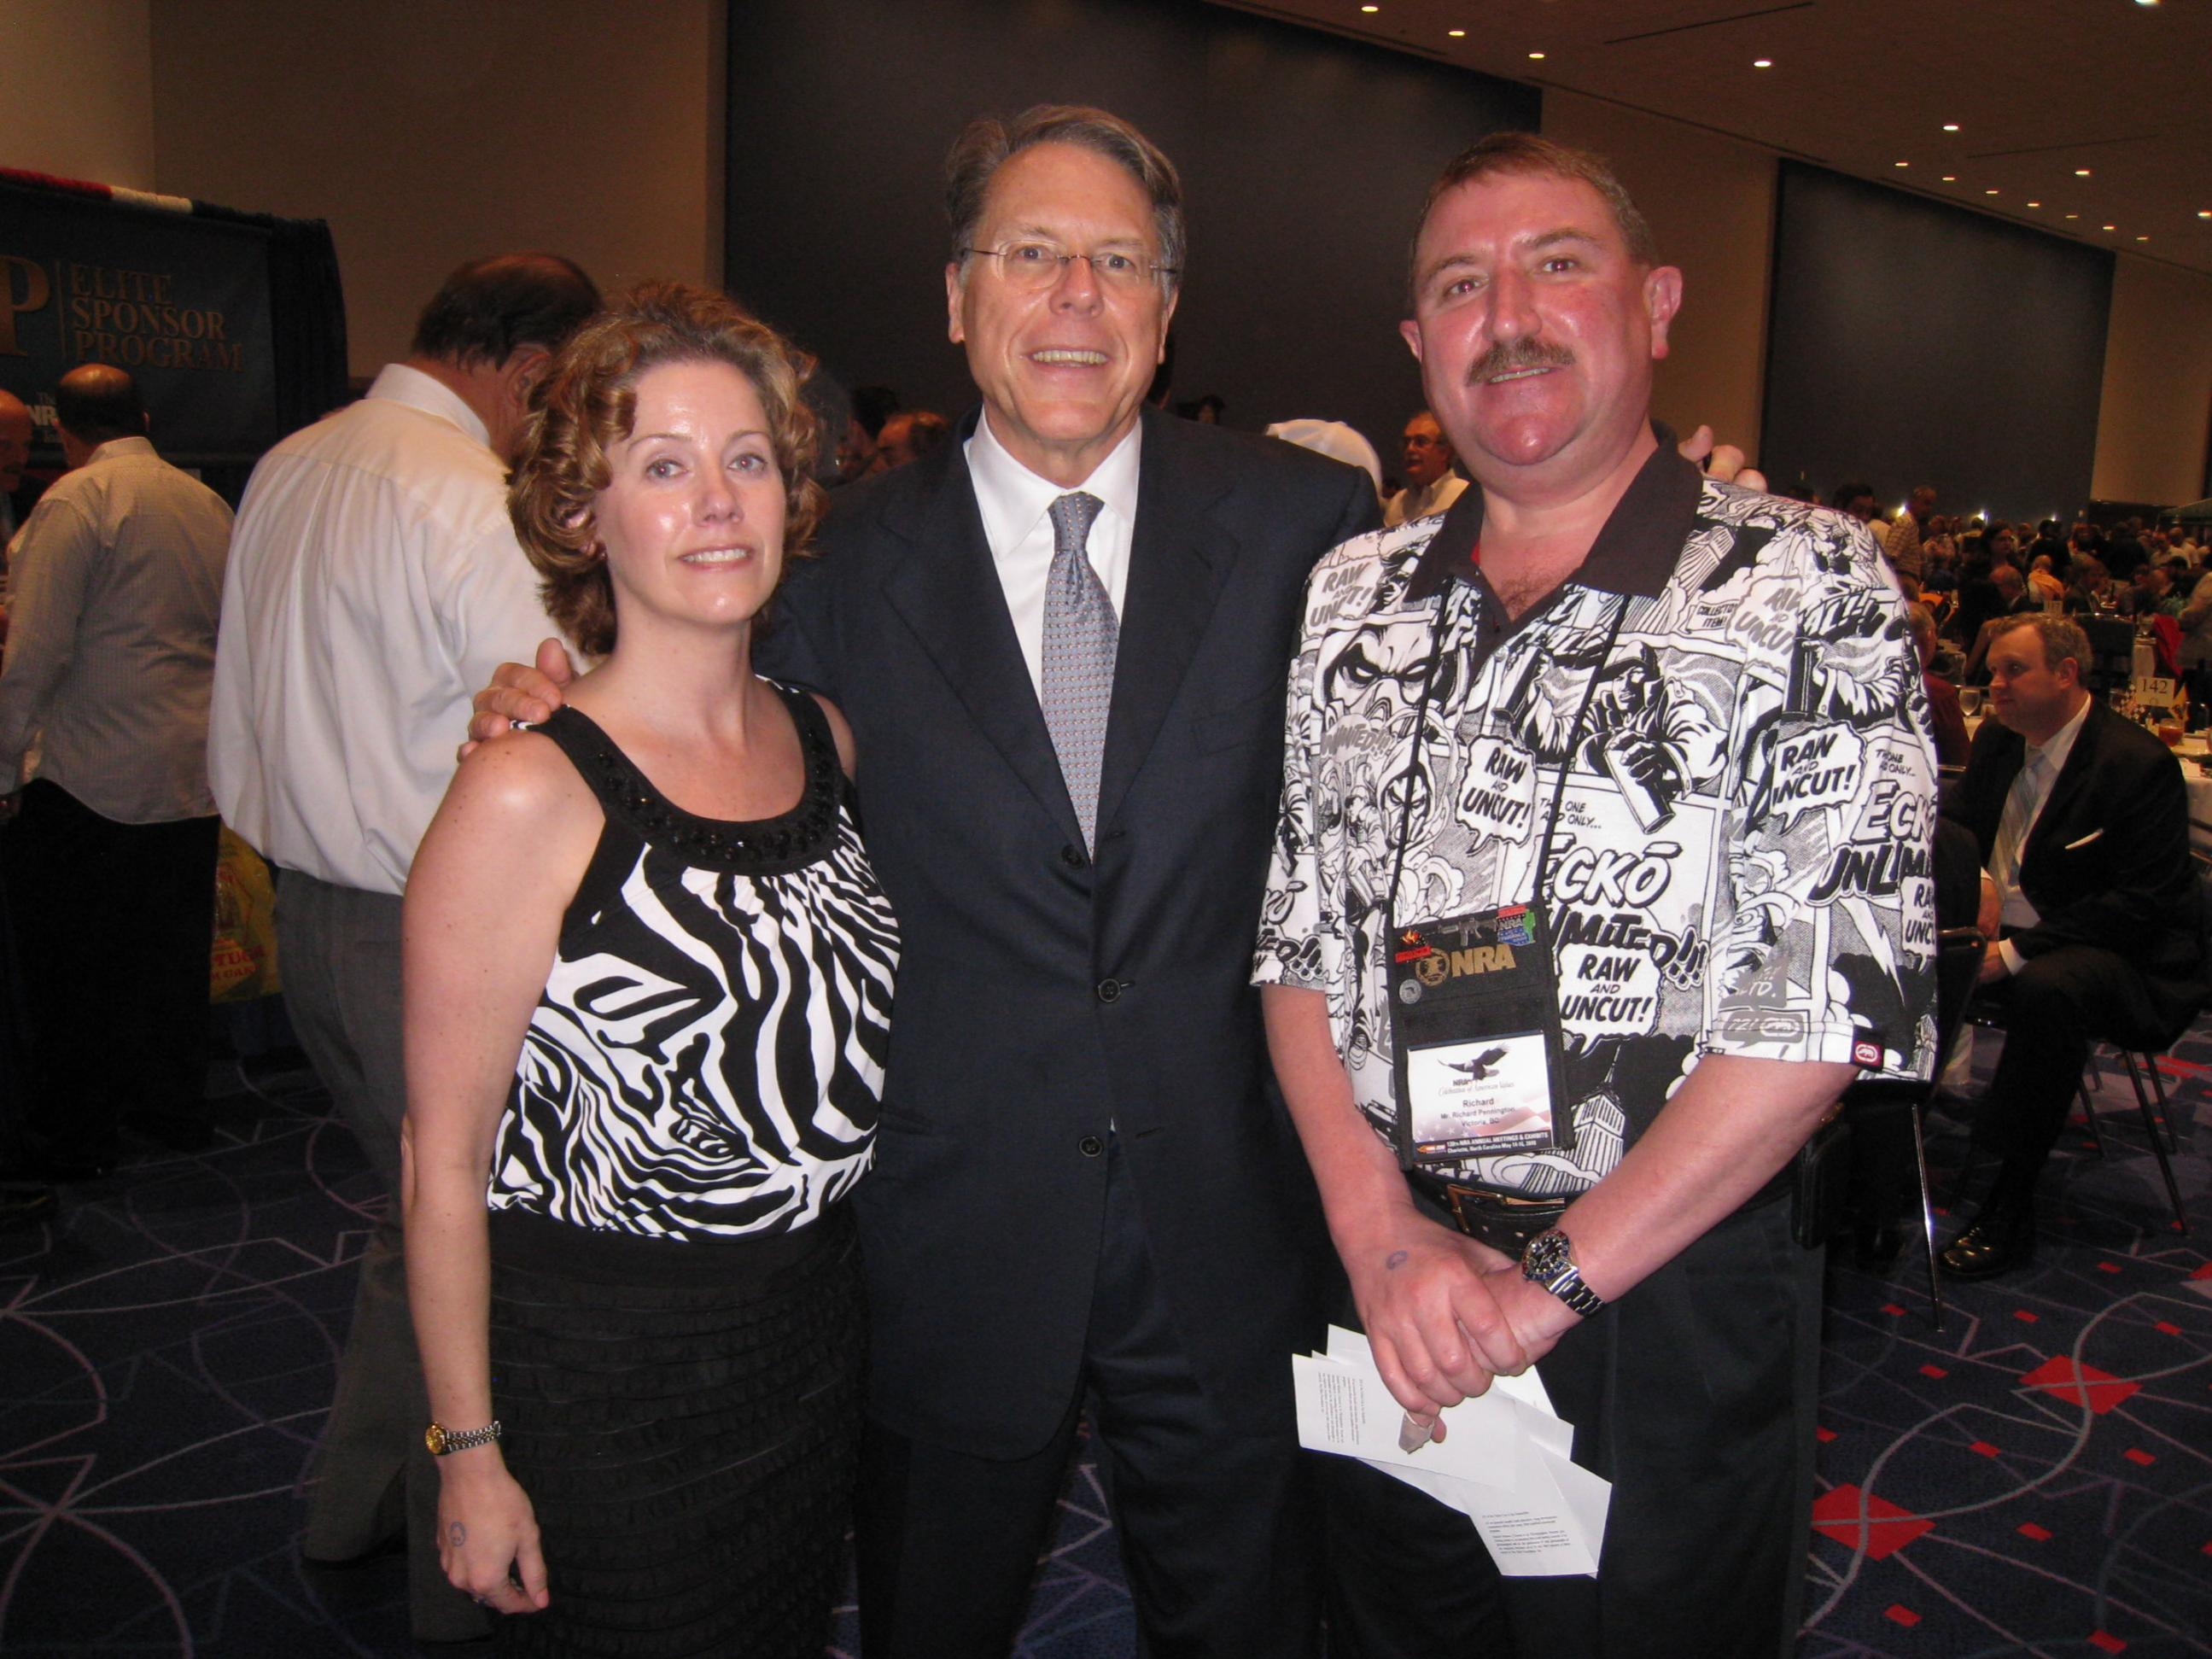 Mrs GB And I Meet Up With Wayne LaPierre In Charlotte.-withlapierre.jpg